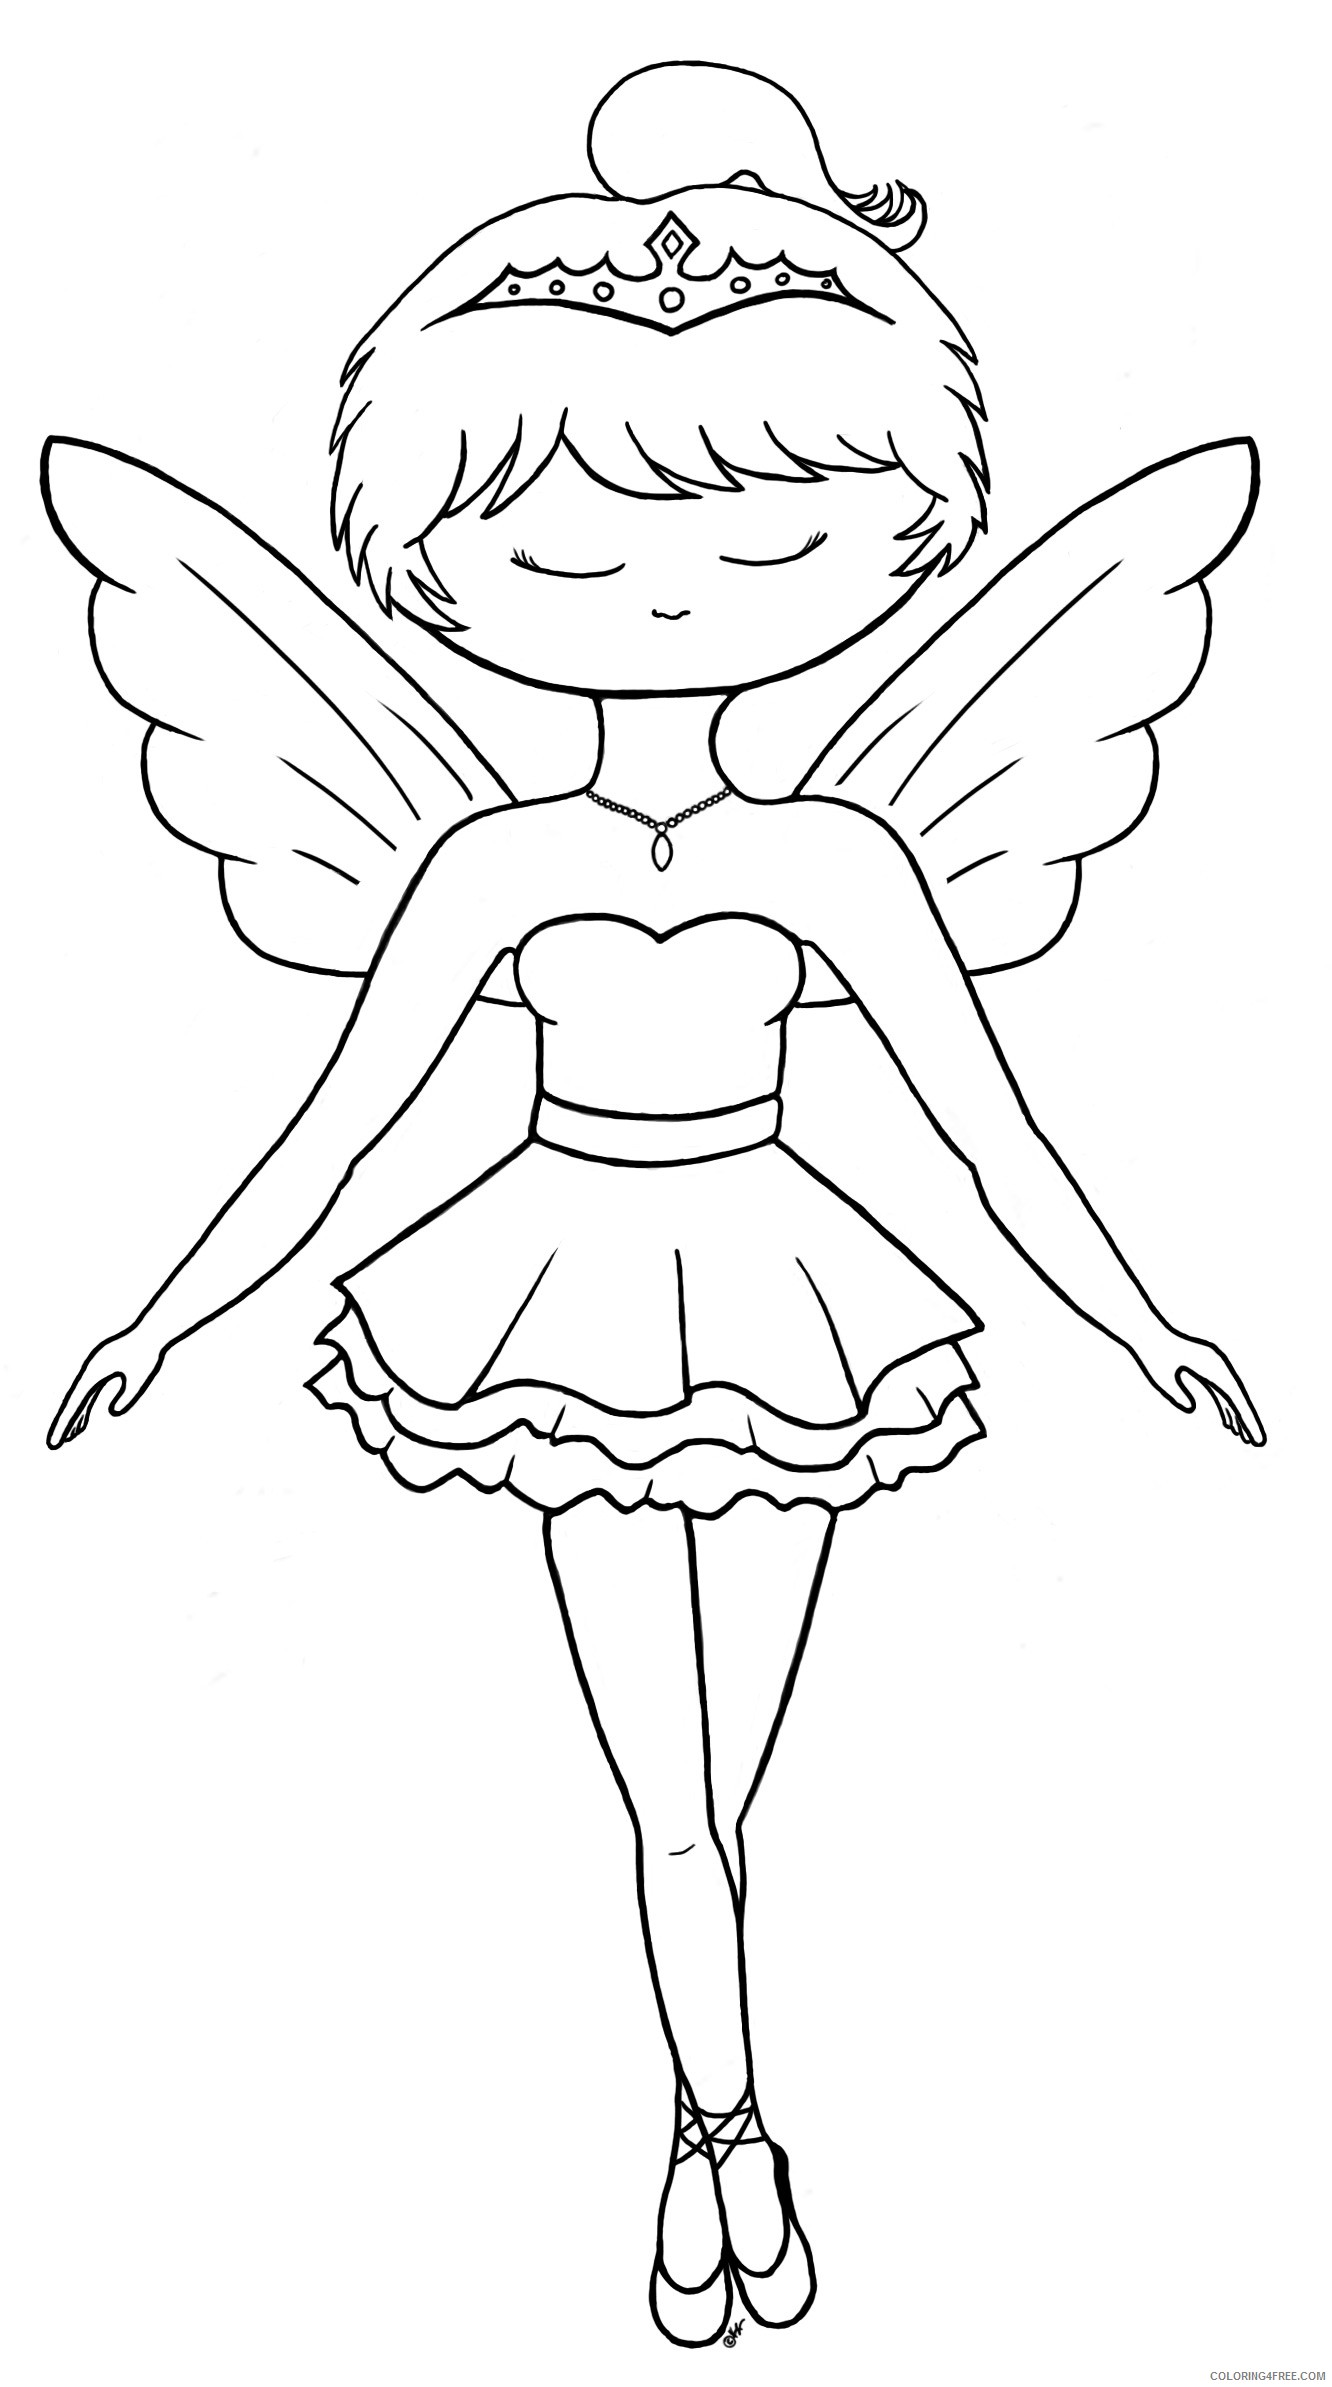 Free Printable Ballet Coloring Pages For Kids | 2387x1332